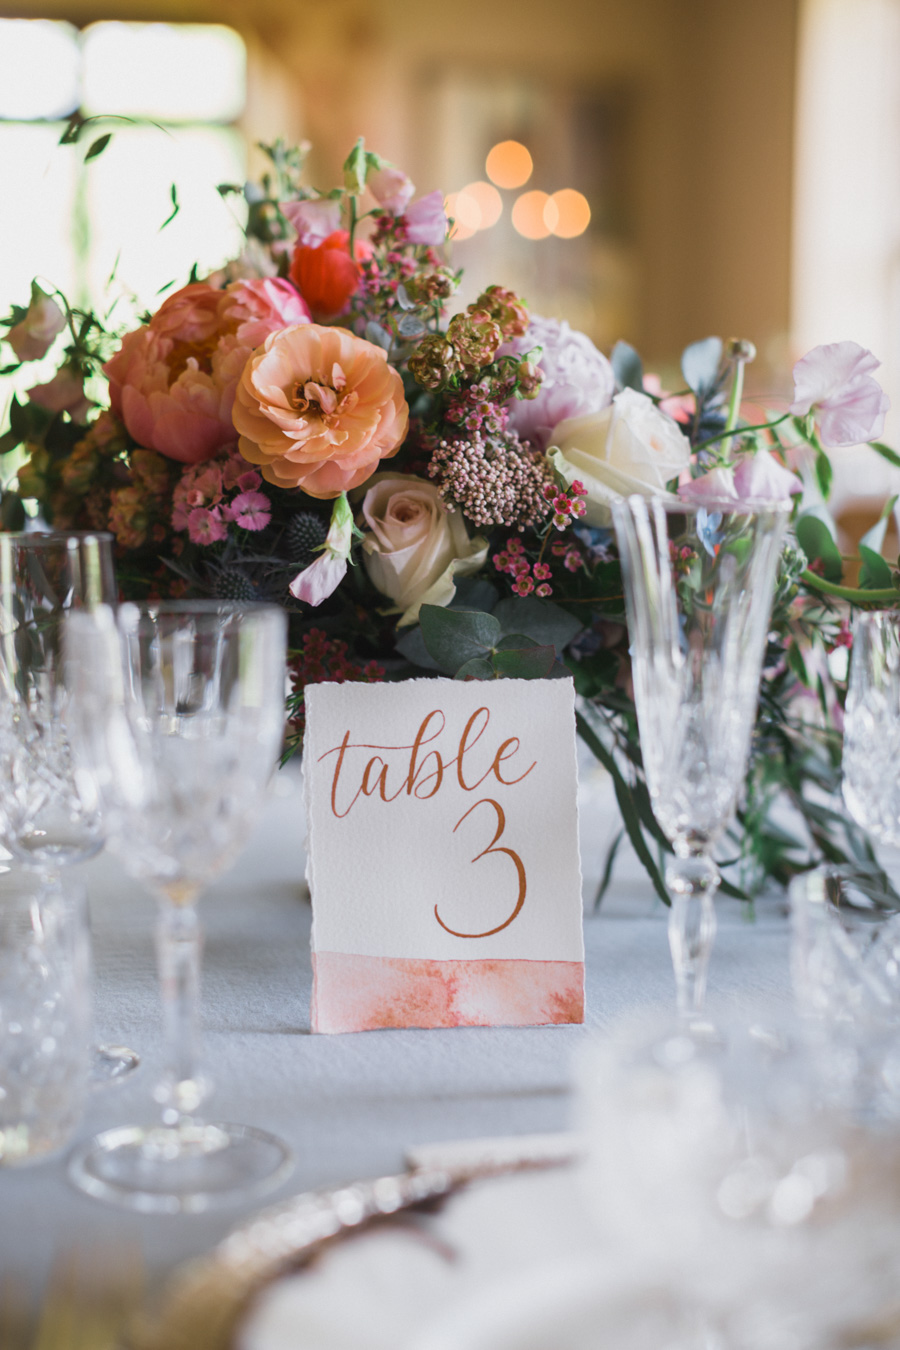 Divine wedding styling with English country garden florals at Pauntley Court, photo credit Red Maple Photography (22)